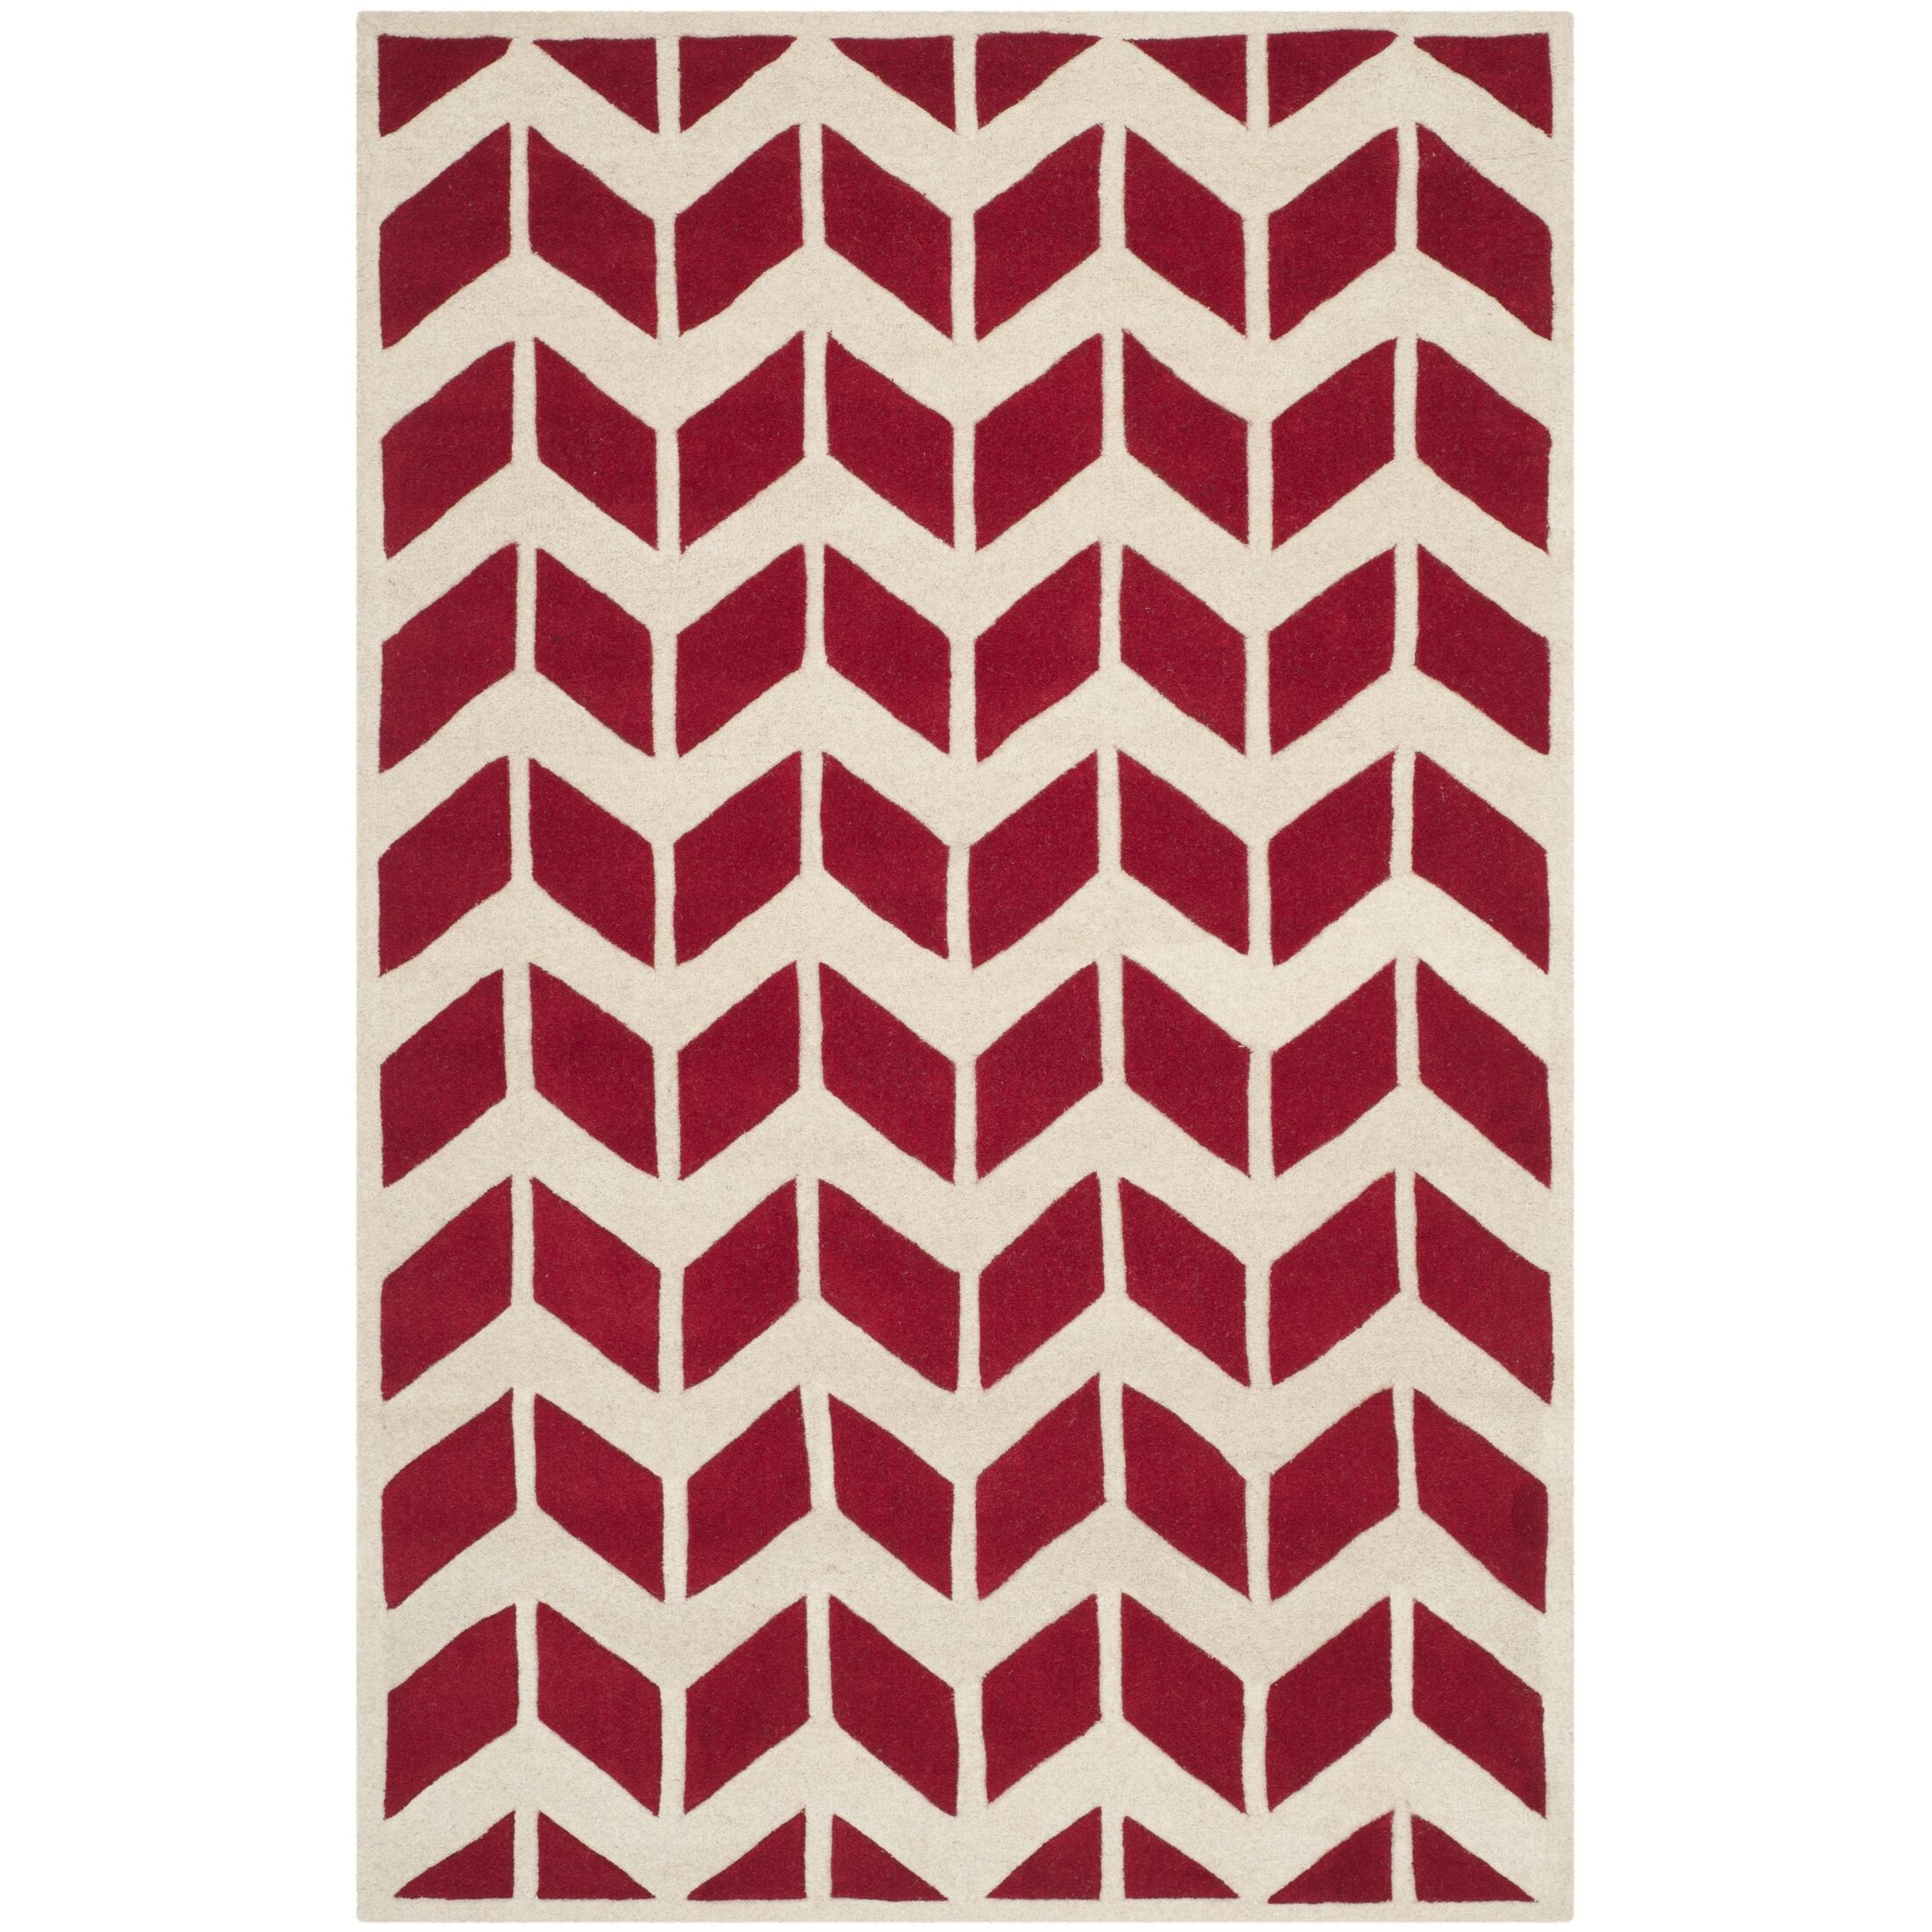 Wilkin Moroccan Hand-Tufted Wool Red/Ivory Area Rug Rug Size: Rectangle 6' x 9'